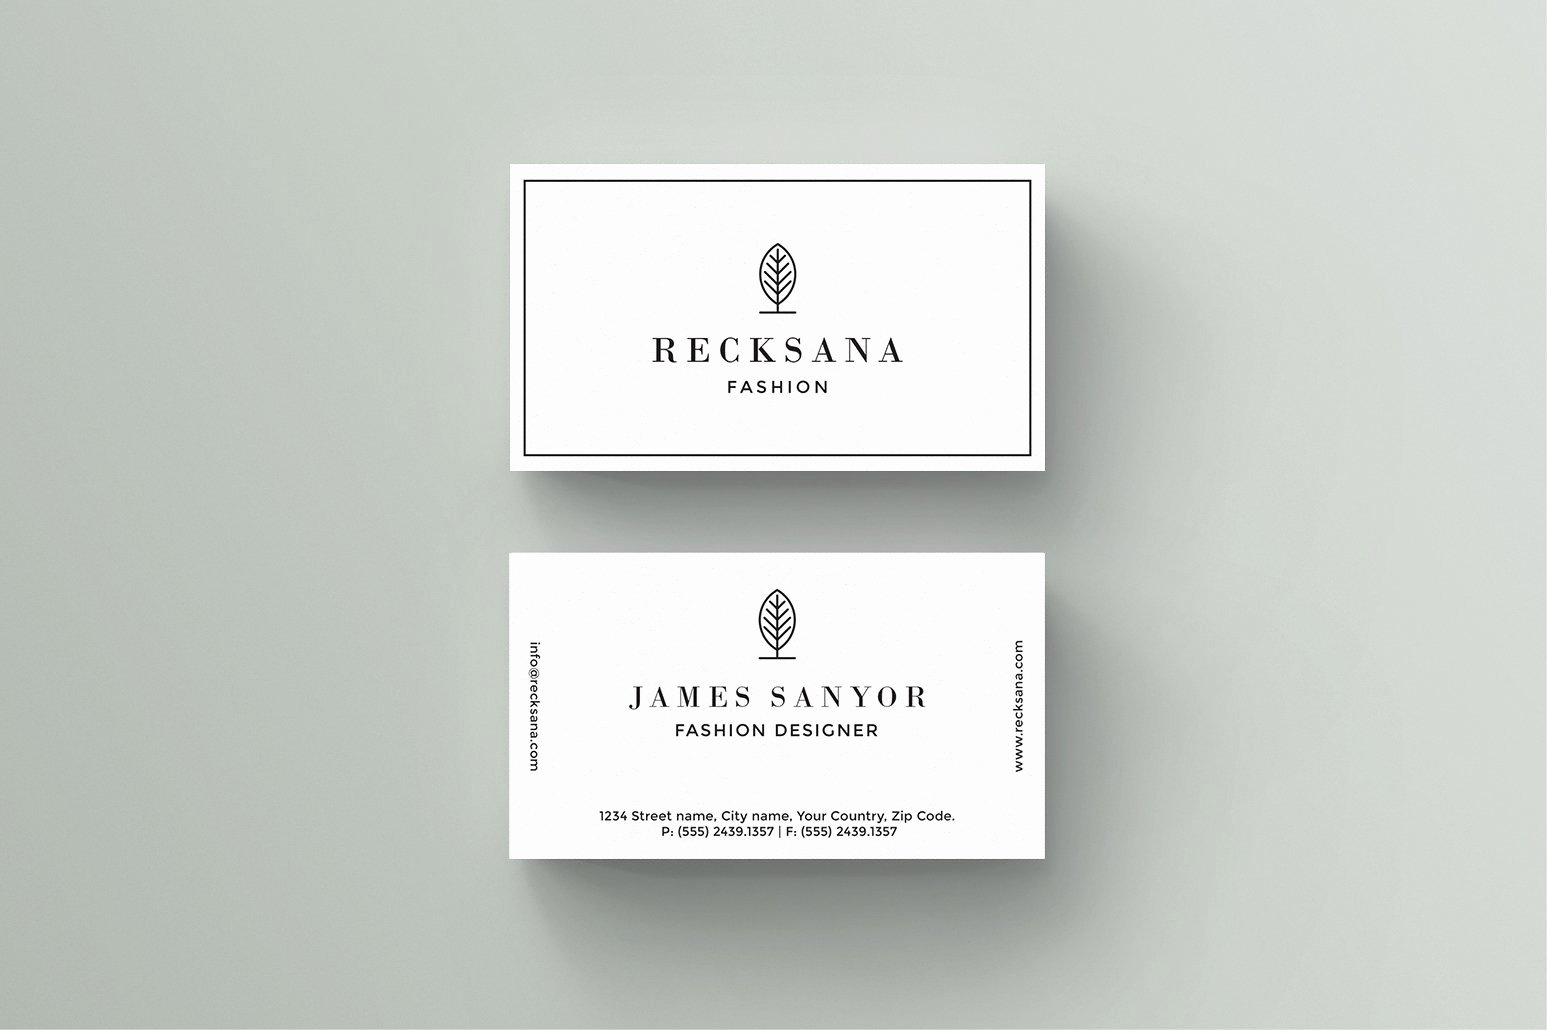 Business Postcard Template Free Best Of Recksana Business Card Template Business Card Templates